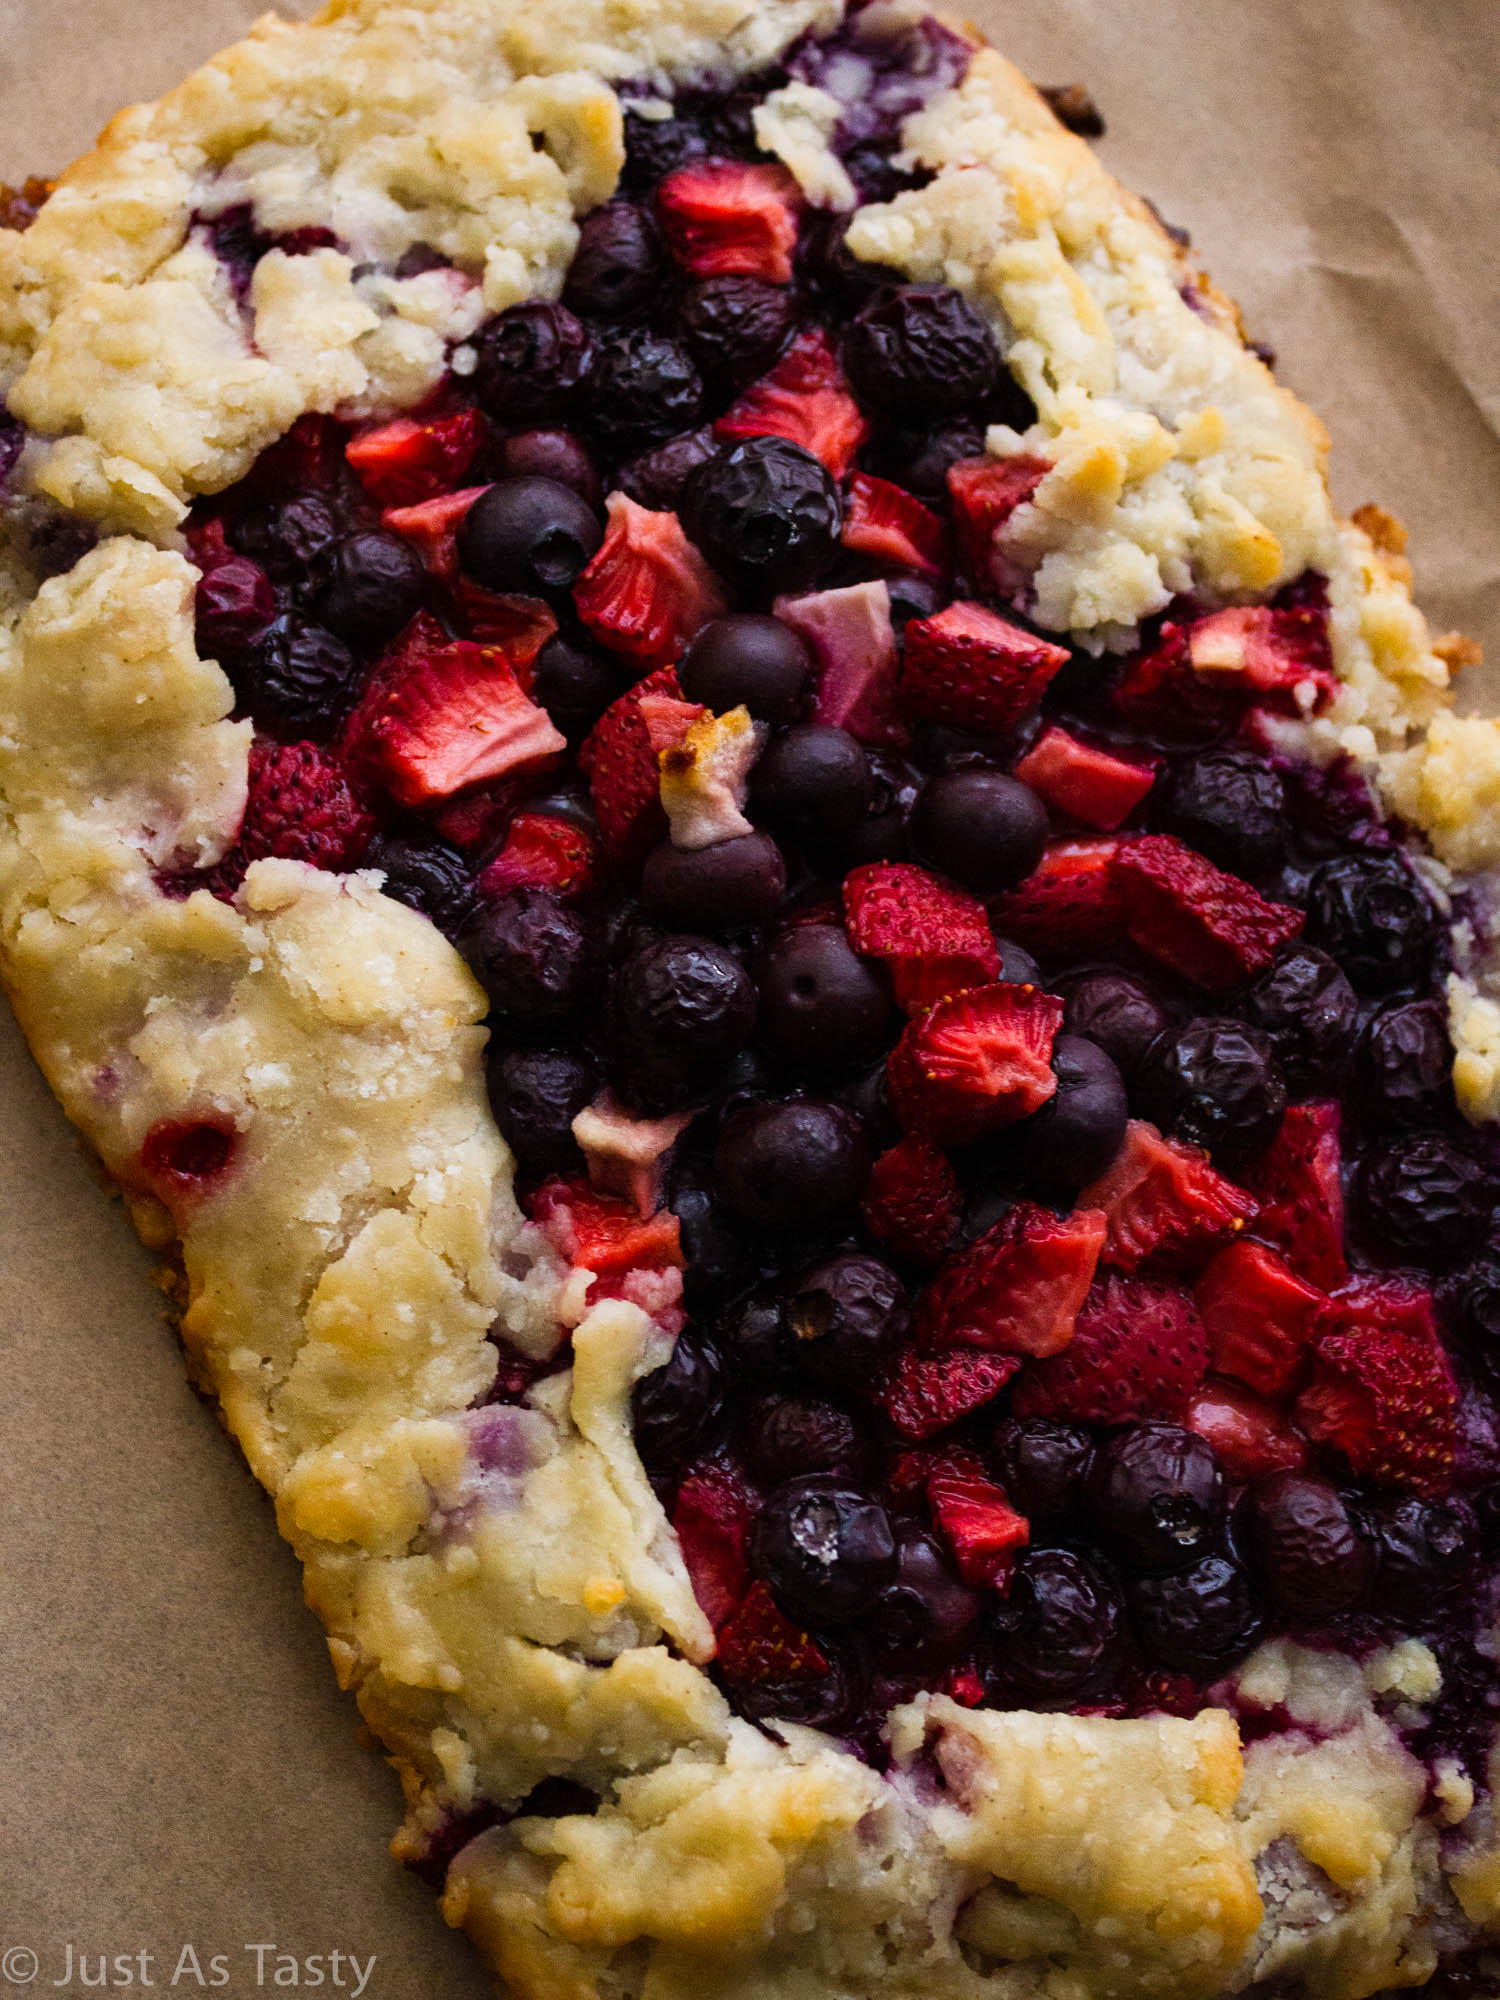 Berry galette on parchment paper.